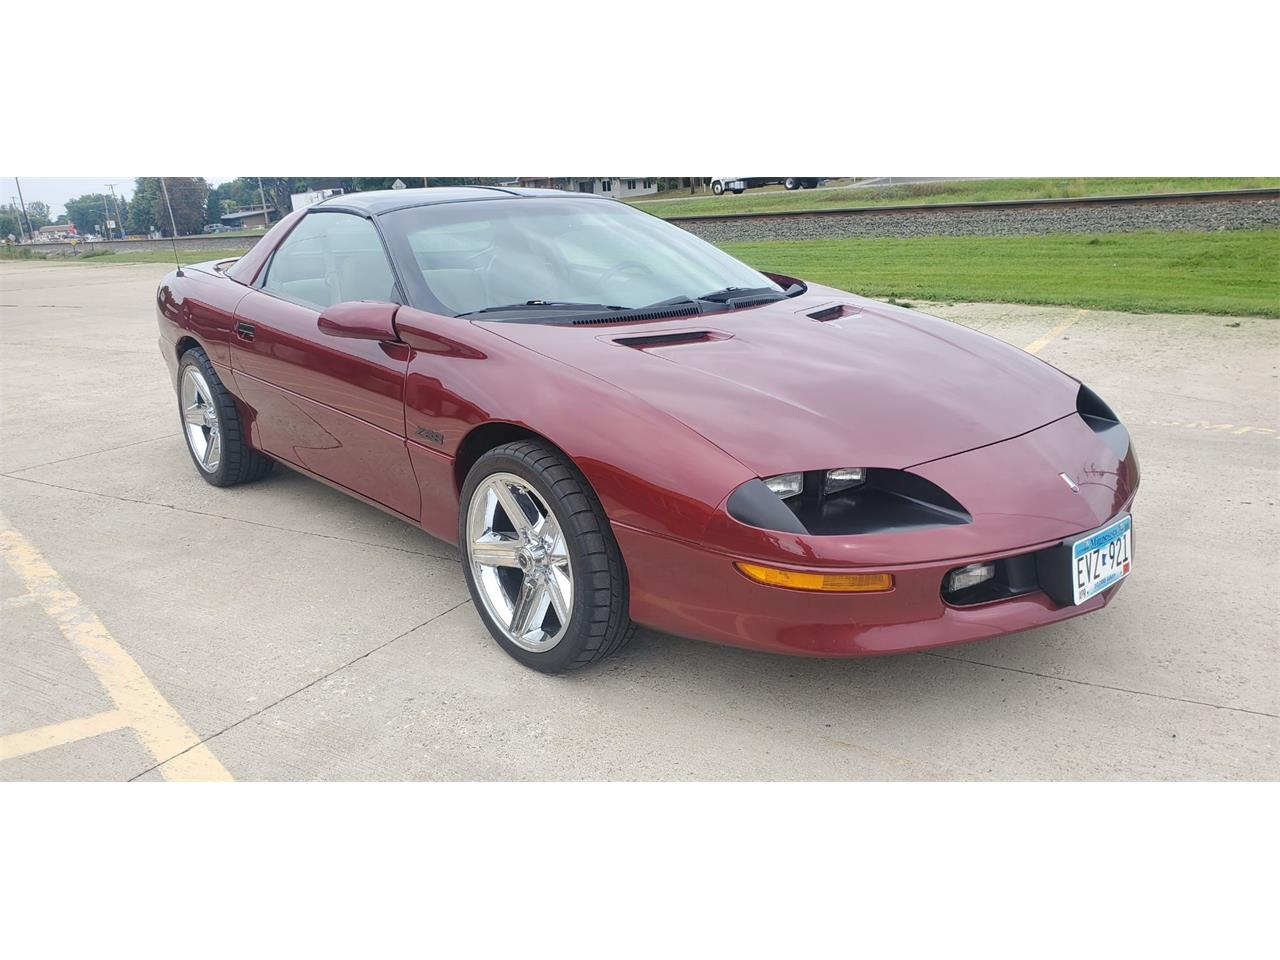 1995 Chevrolet Camaro (CC-1390746) for sale in Annandale, Minnesota